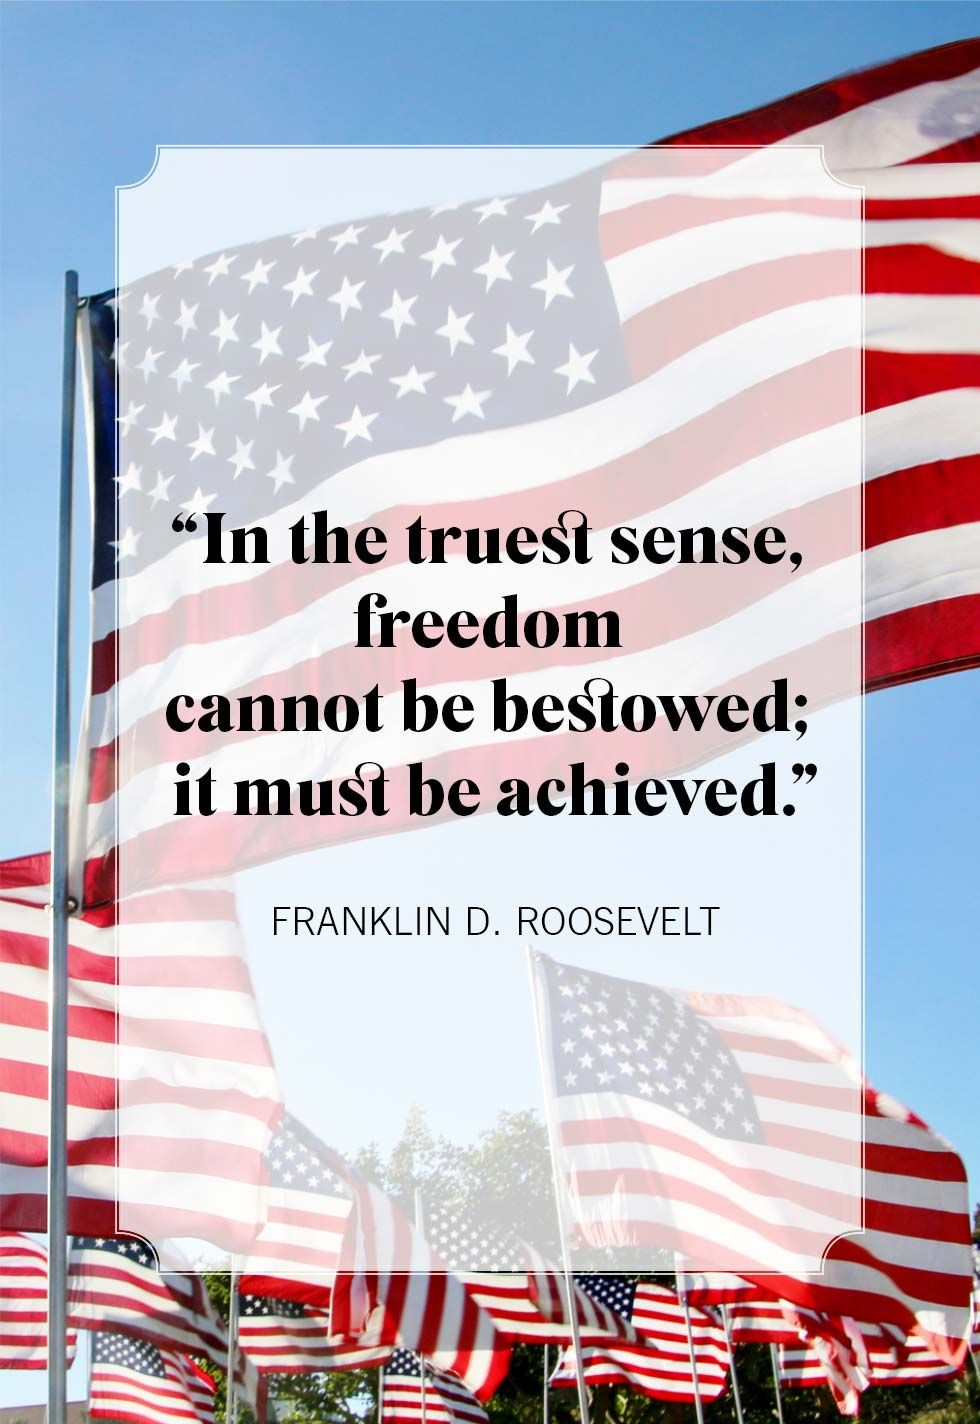 Quotations About Patriotism : quotations, about, patriotism, Patriotic, Quotes, Inspirational, Sayings, About, America